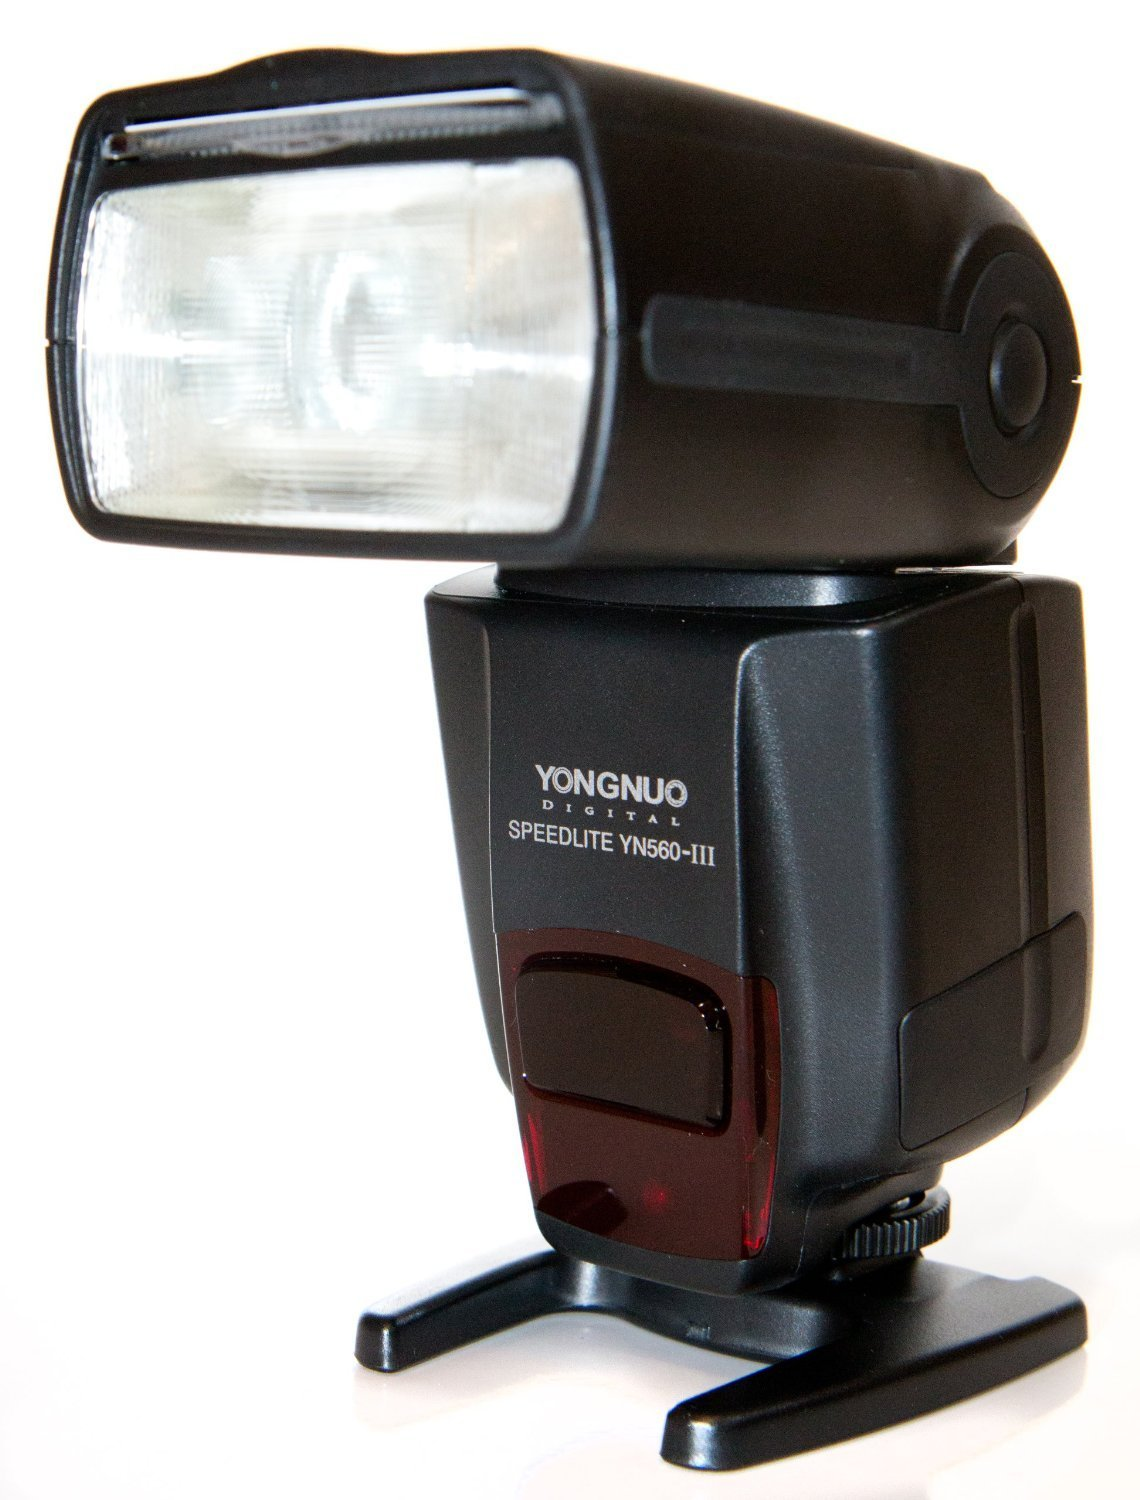 Yongnuo YN560-III-USA Speedlite Flash with Integrated 2.4-GHz Receiver for Canon, Nikon, Pentax, Olympus, GN58, US Warranty (Black) by YONGNUO